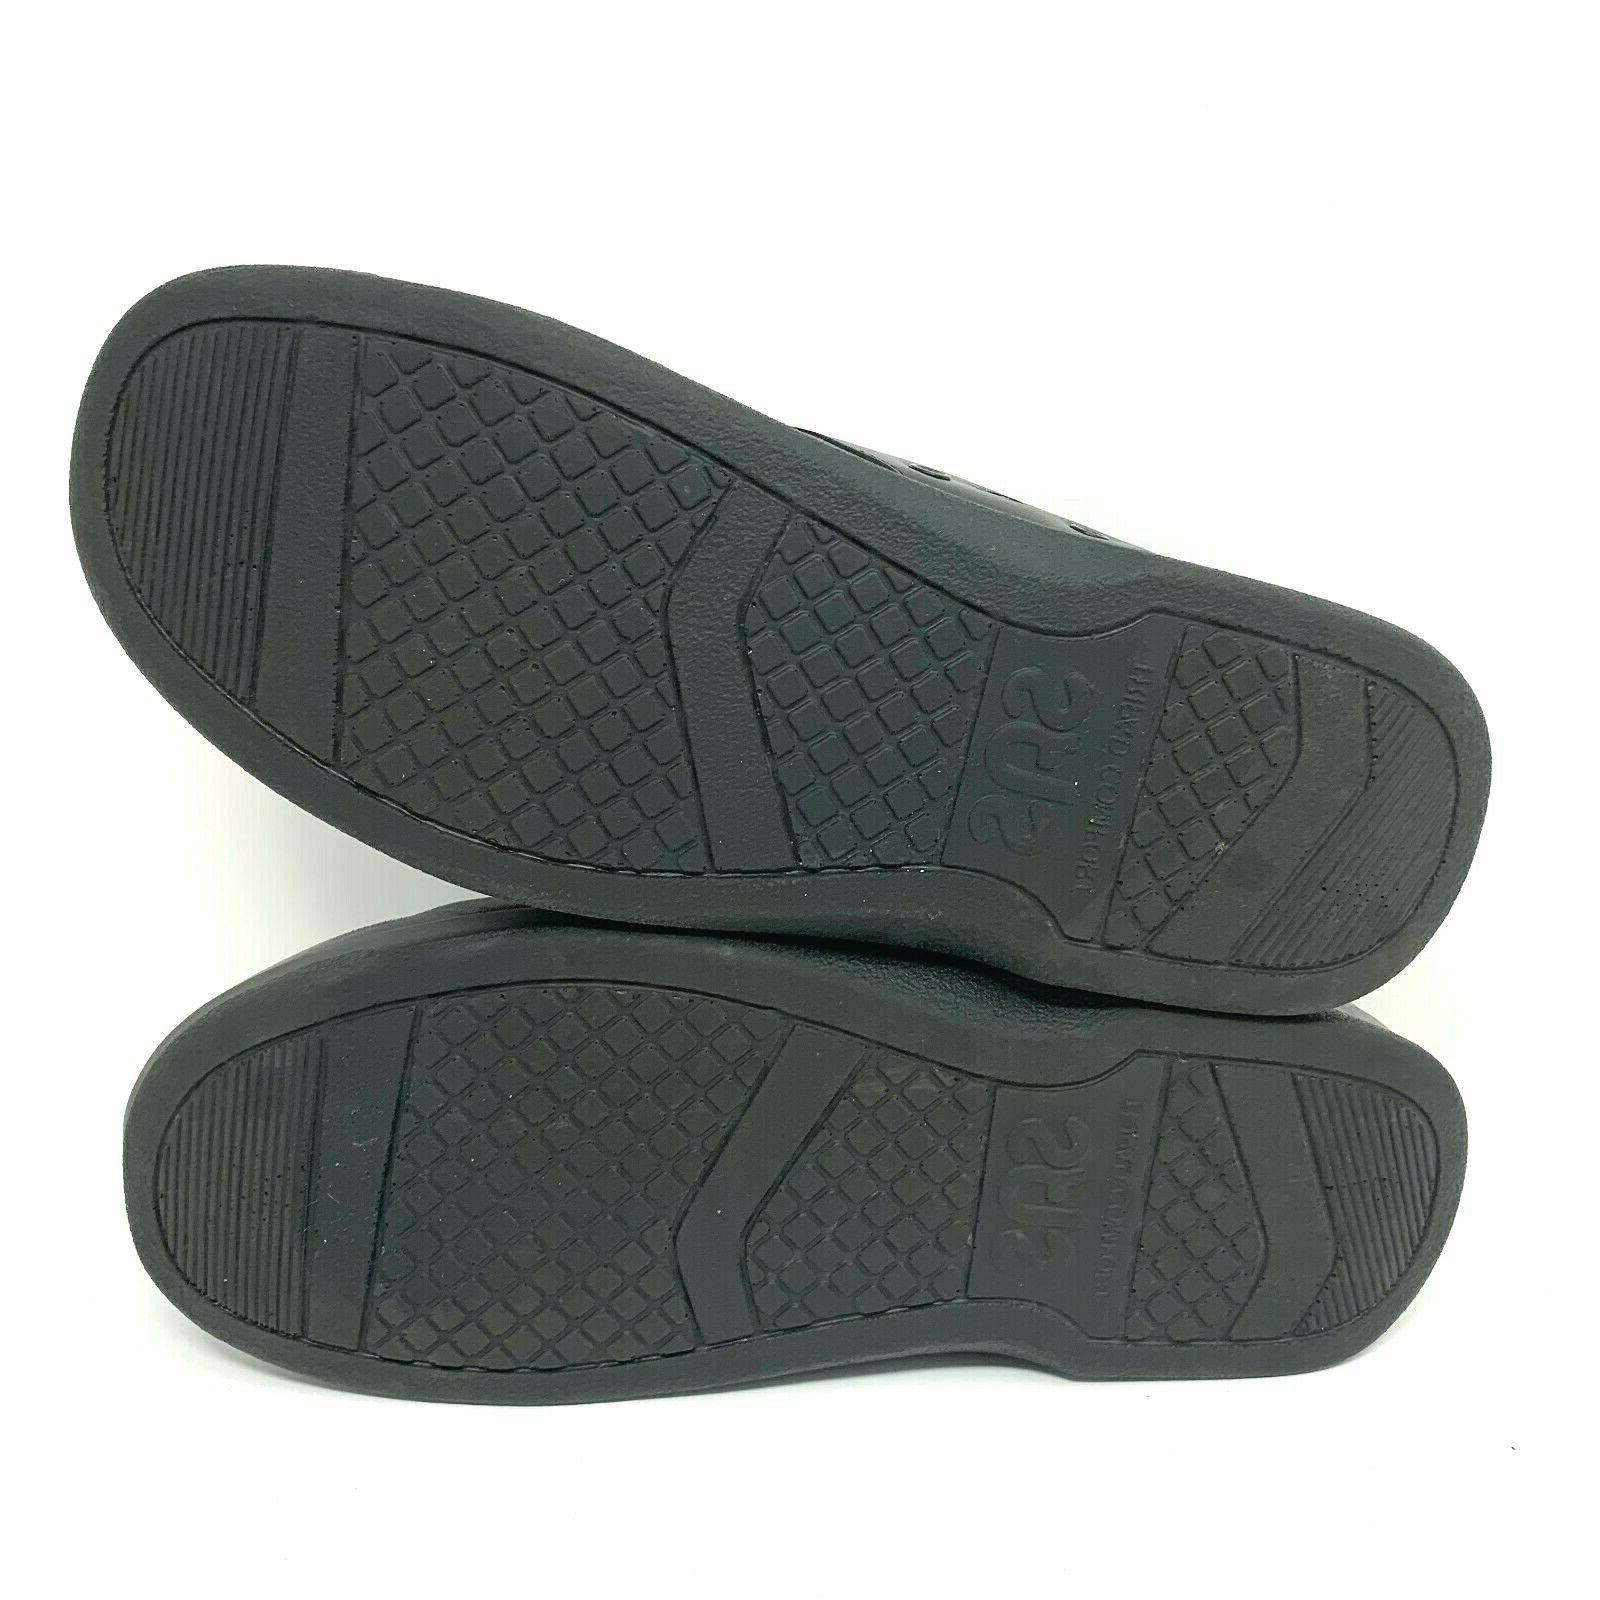 SAS Black Out Leather Walking Support